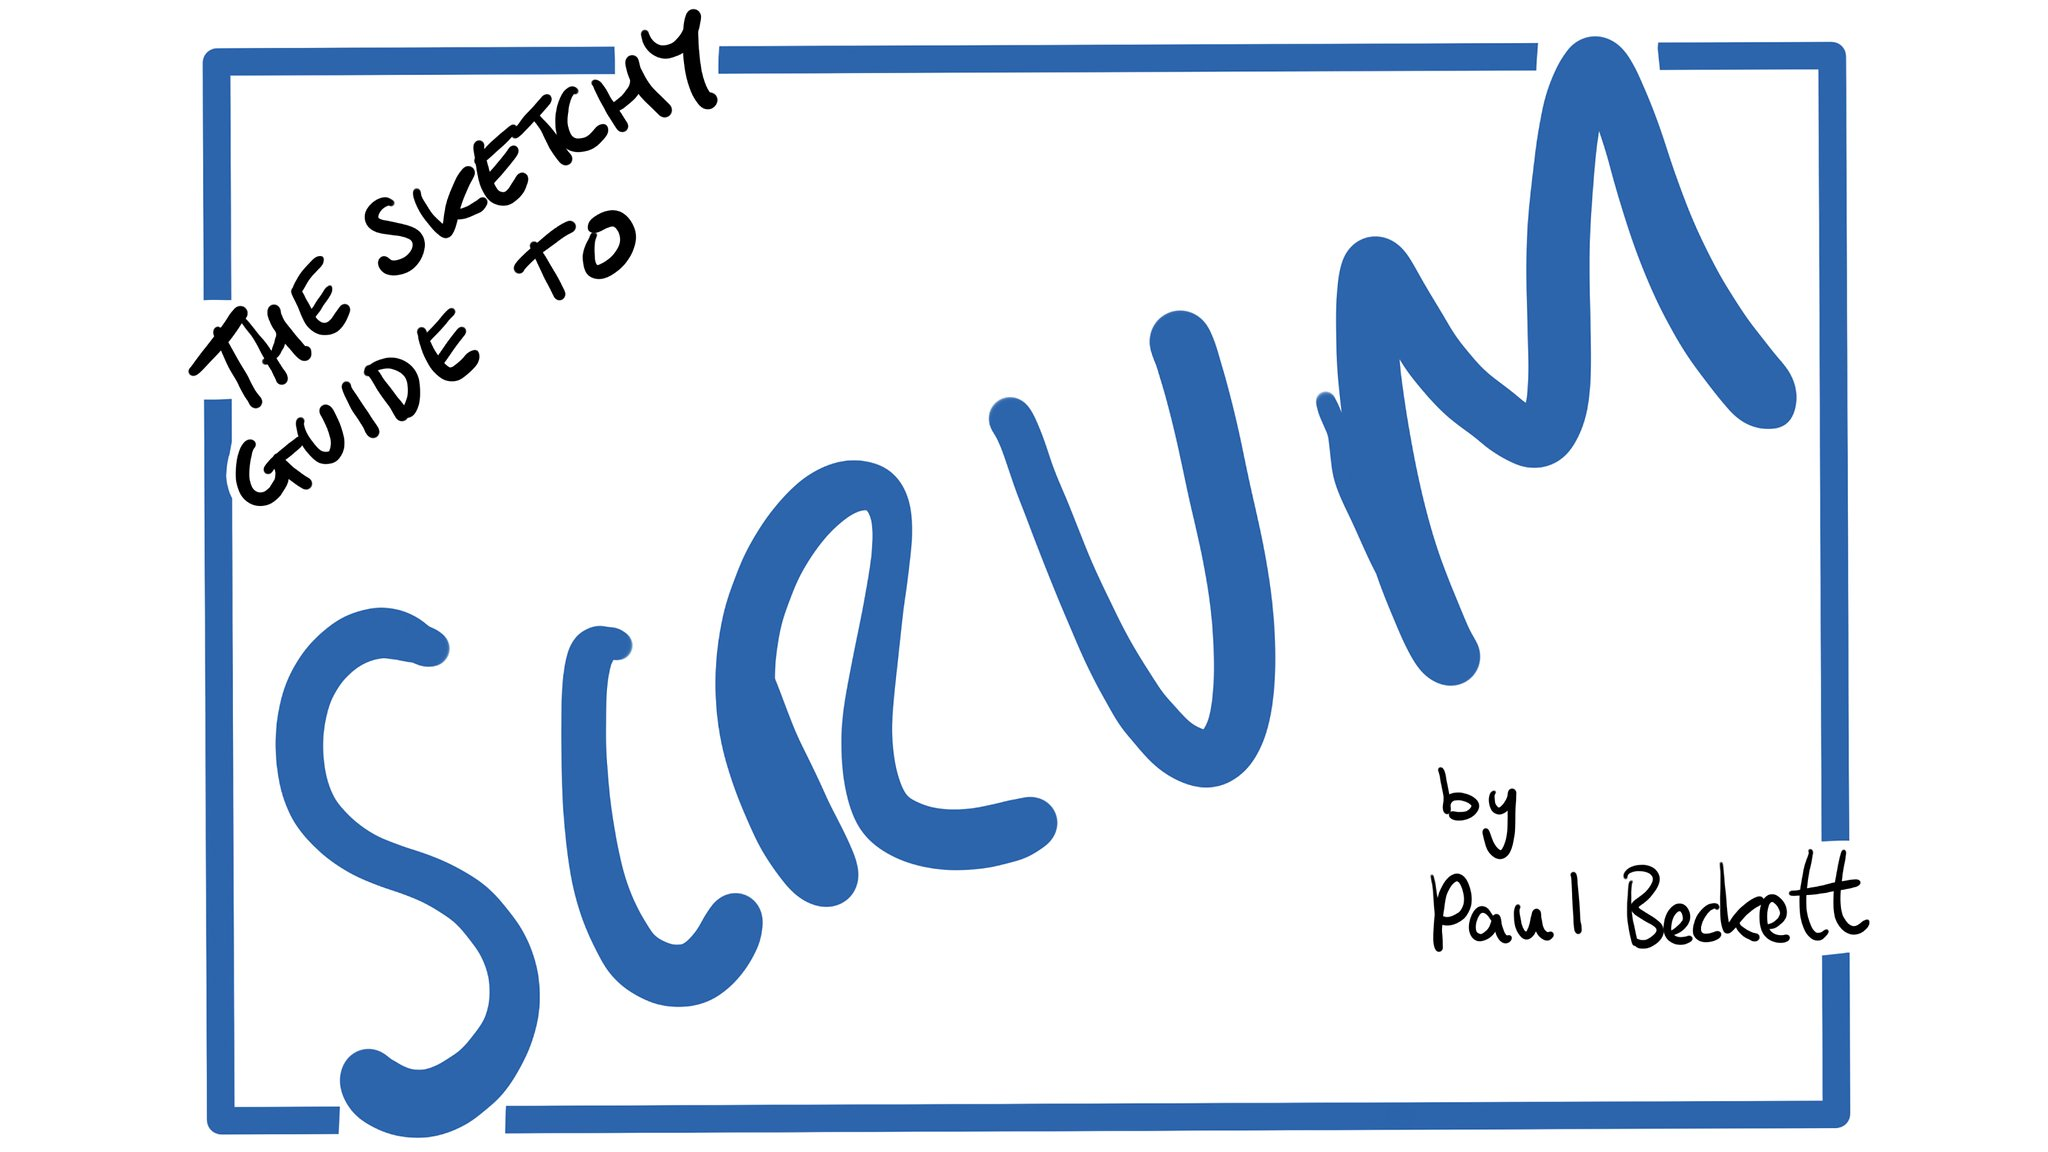 The Sketchy Guide to Scrum